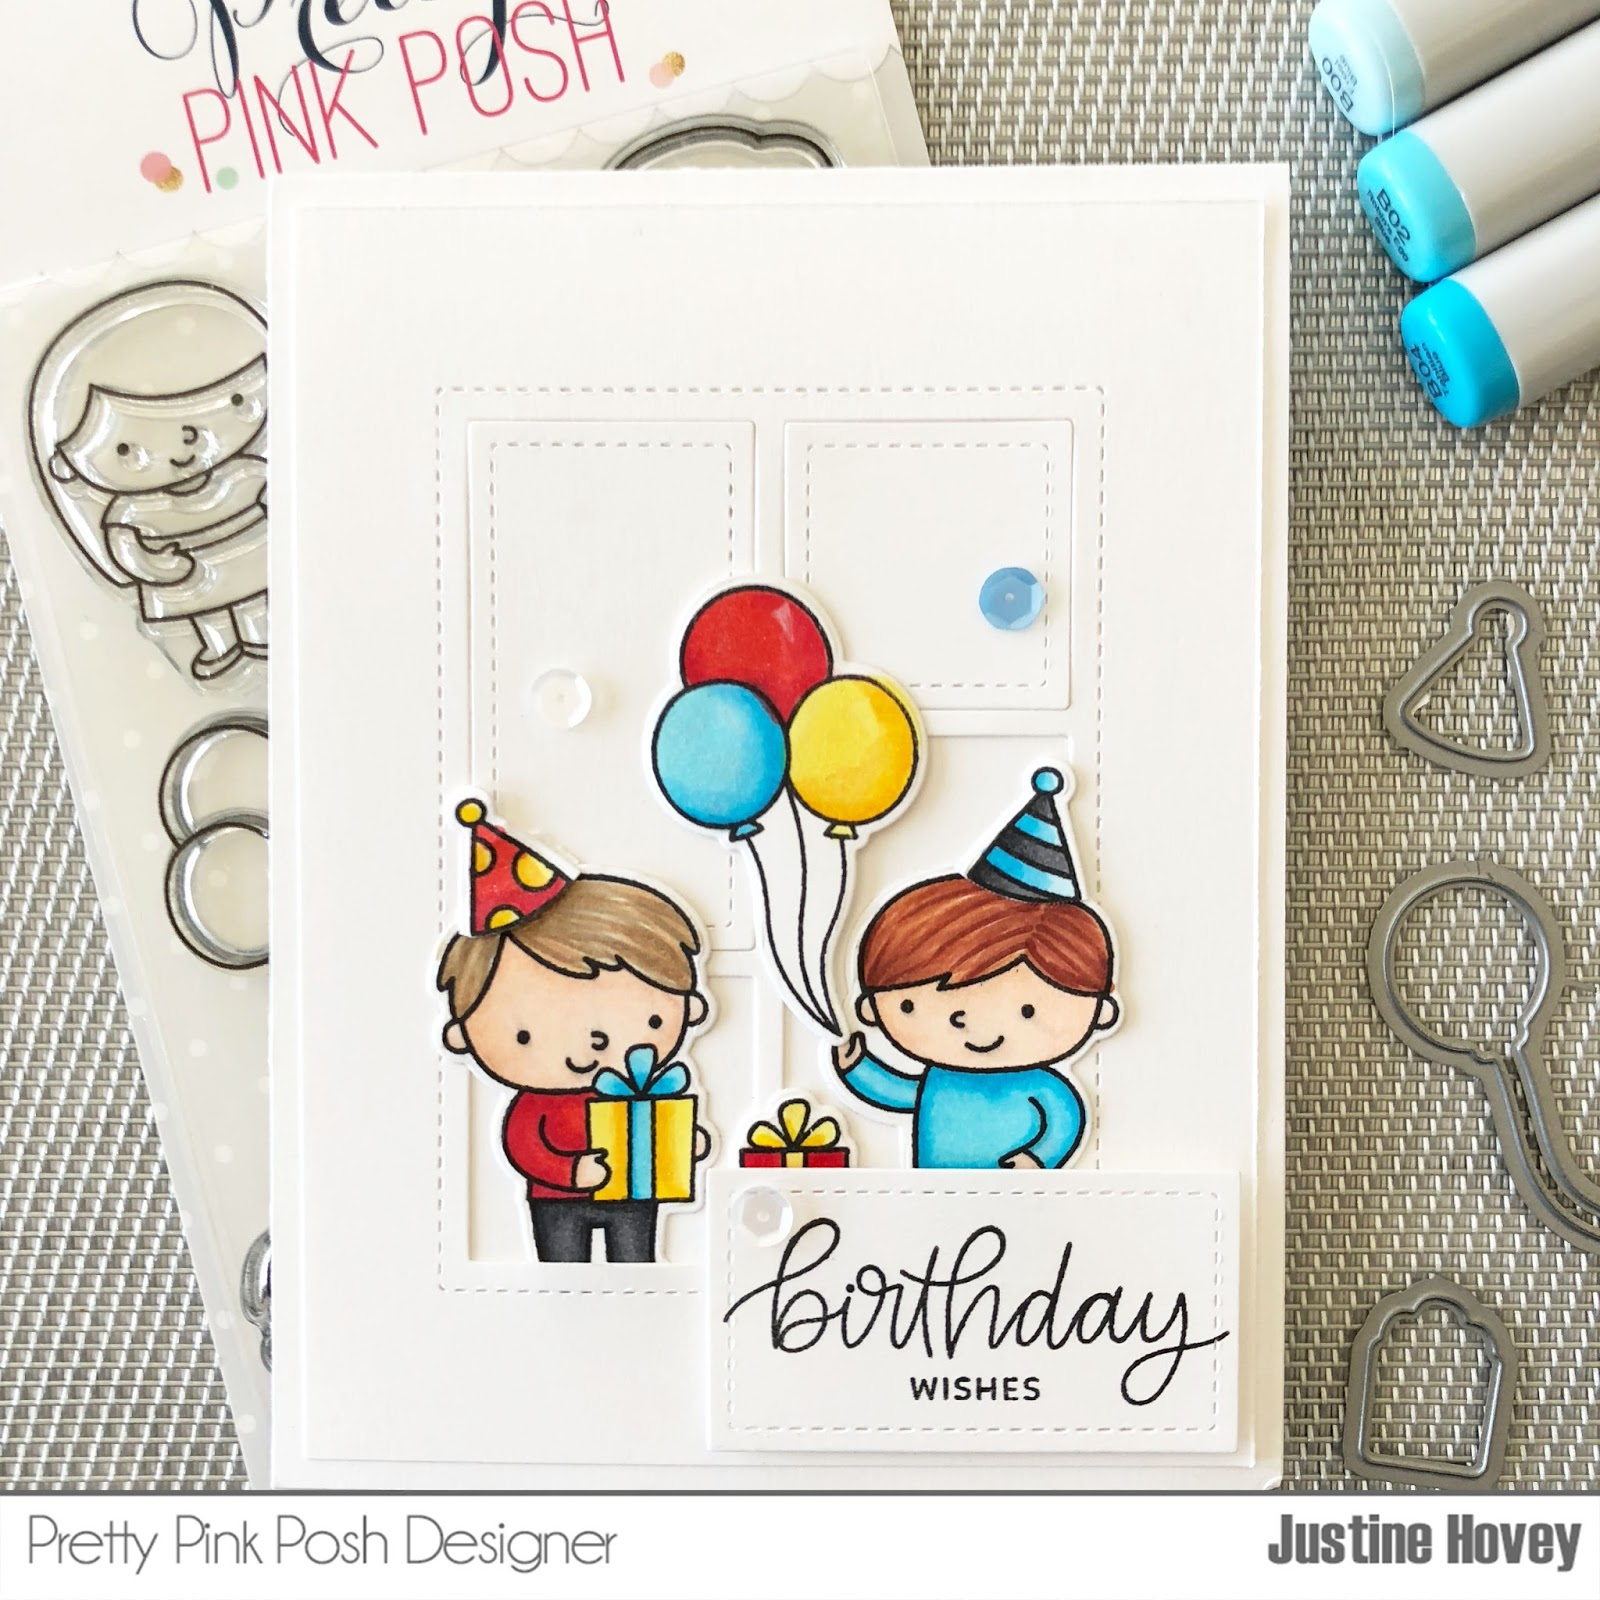 Justines cardmaking quick copic marker tips birthday card tutorial today i created a birthday card using pretty pink poshs birthday friends stamp and die set how adorable are these little guys i always have trouble with bookmarktalkfo Choice Image